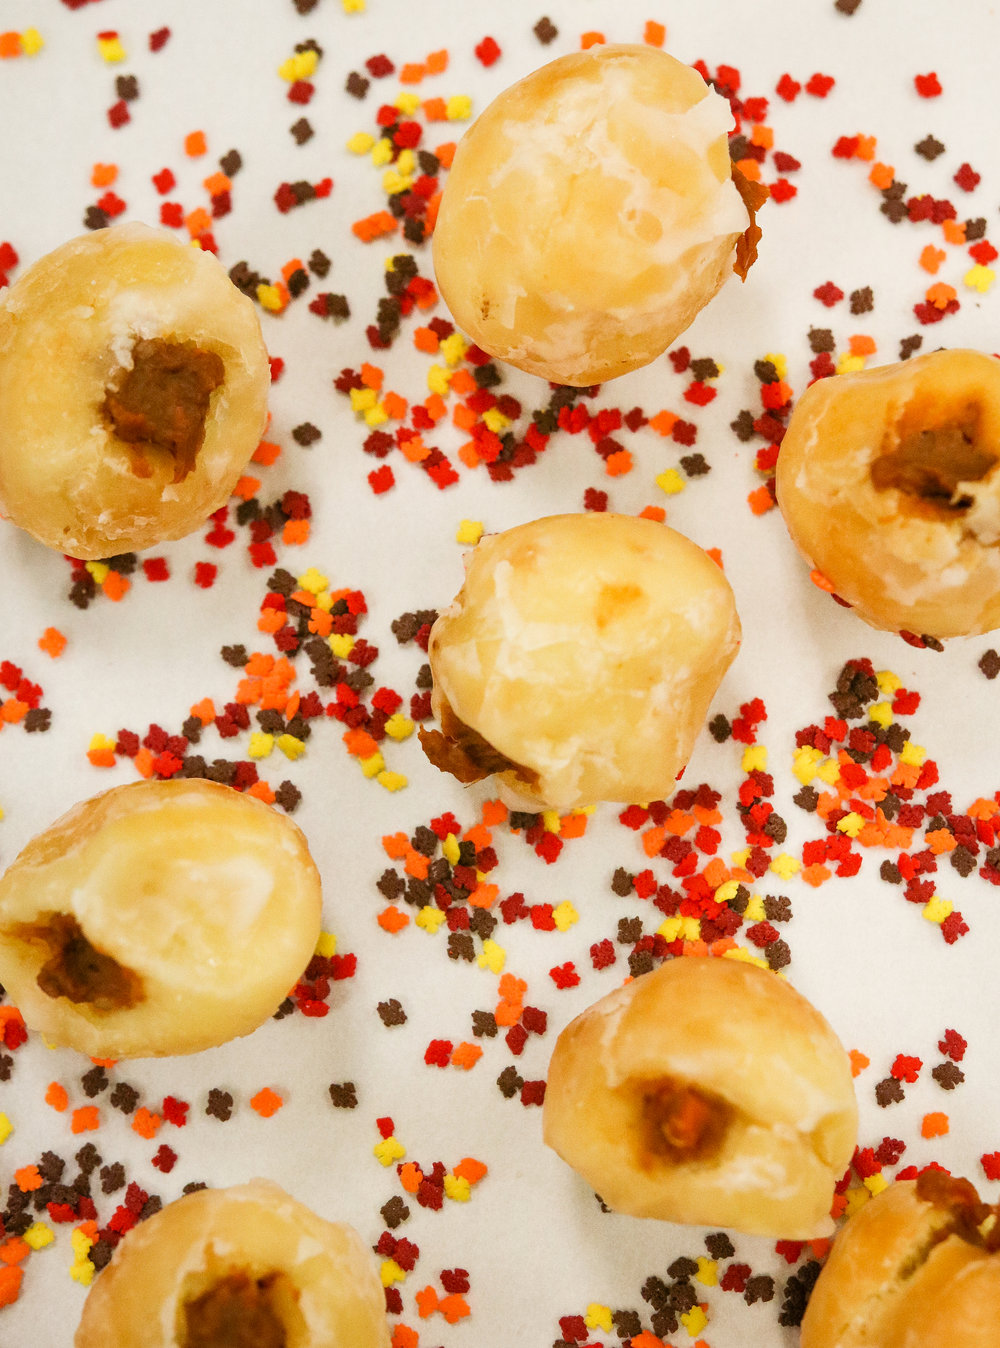 MARSHMALLOW N' YAM HOLES - DONUT HOLES STUFFED WITH YAM AND GLAZED WITH MARSH GLAZE!3/$1.25 // AVAILABLE BY 11AM!